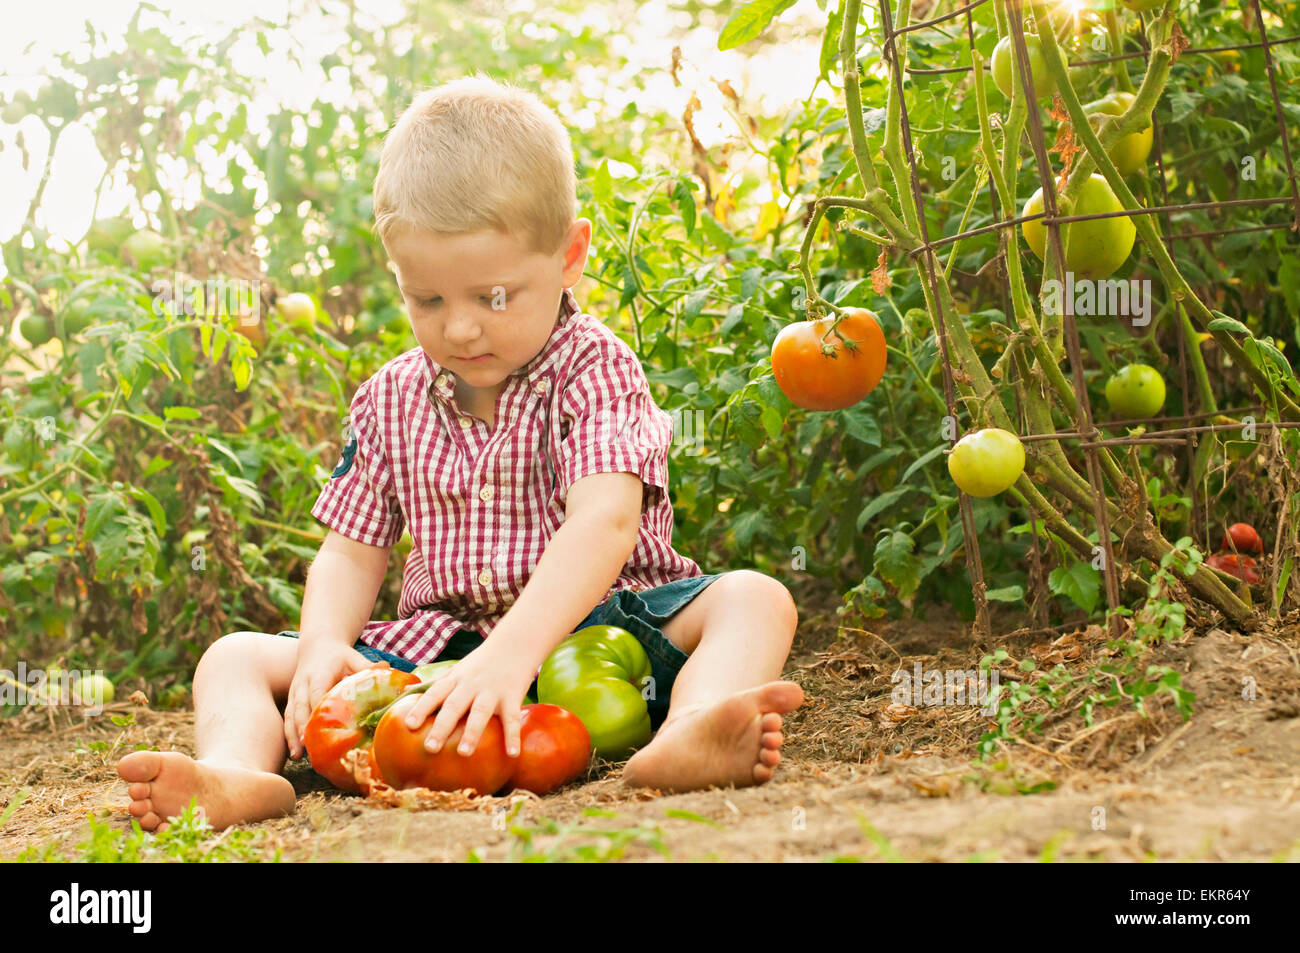 boy collects tomatoes in garden - Stock Image